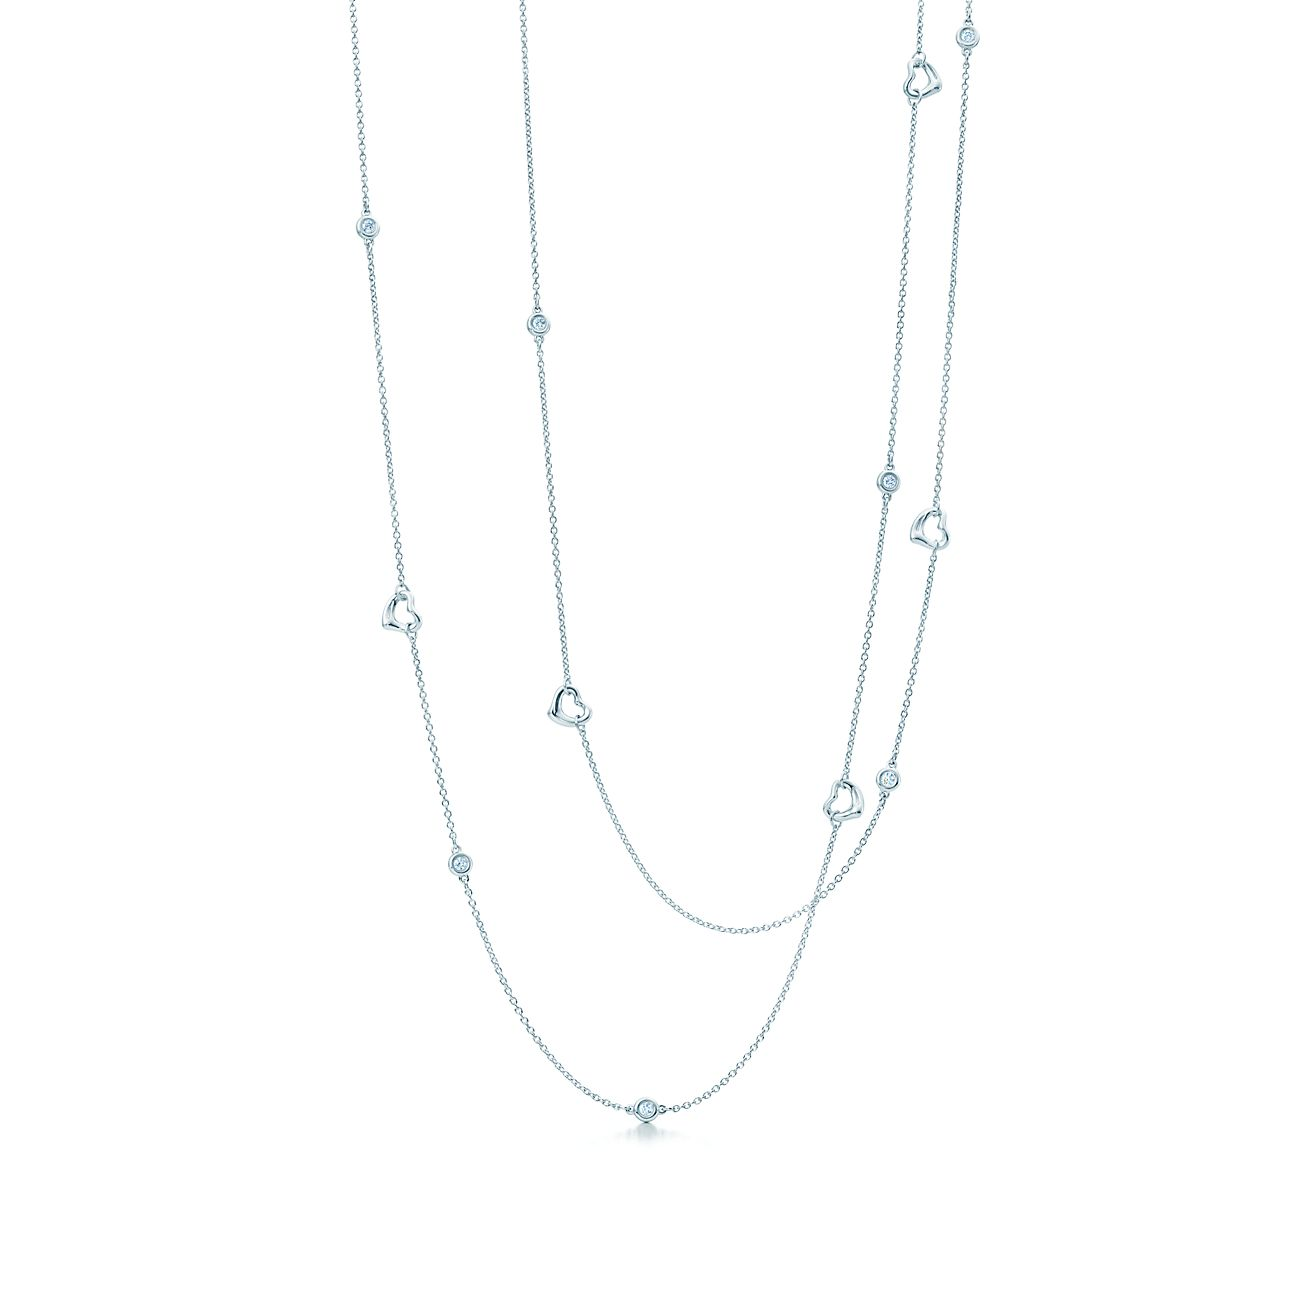 Elsa Peretti Pearls by the Yard sprinkle necklace in sterling silver - Size Tiffany & Co. 1M2d6M5